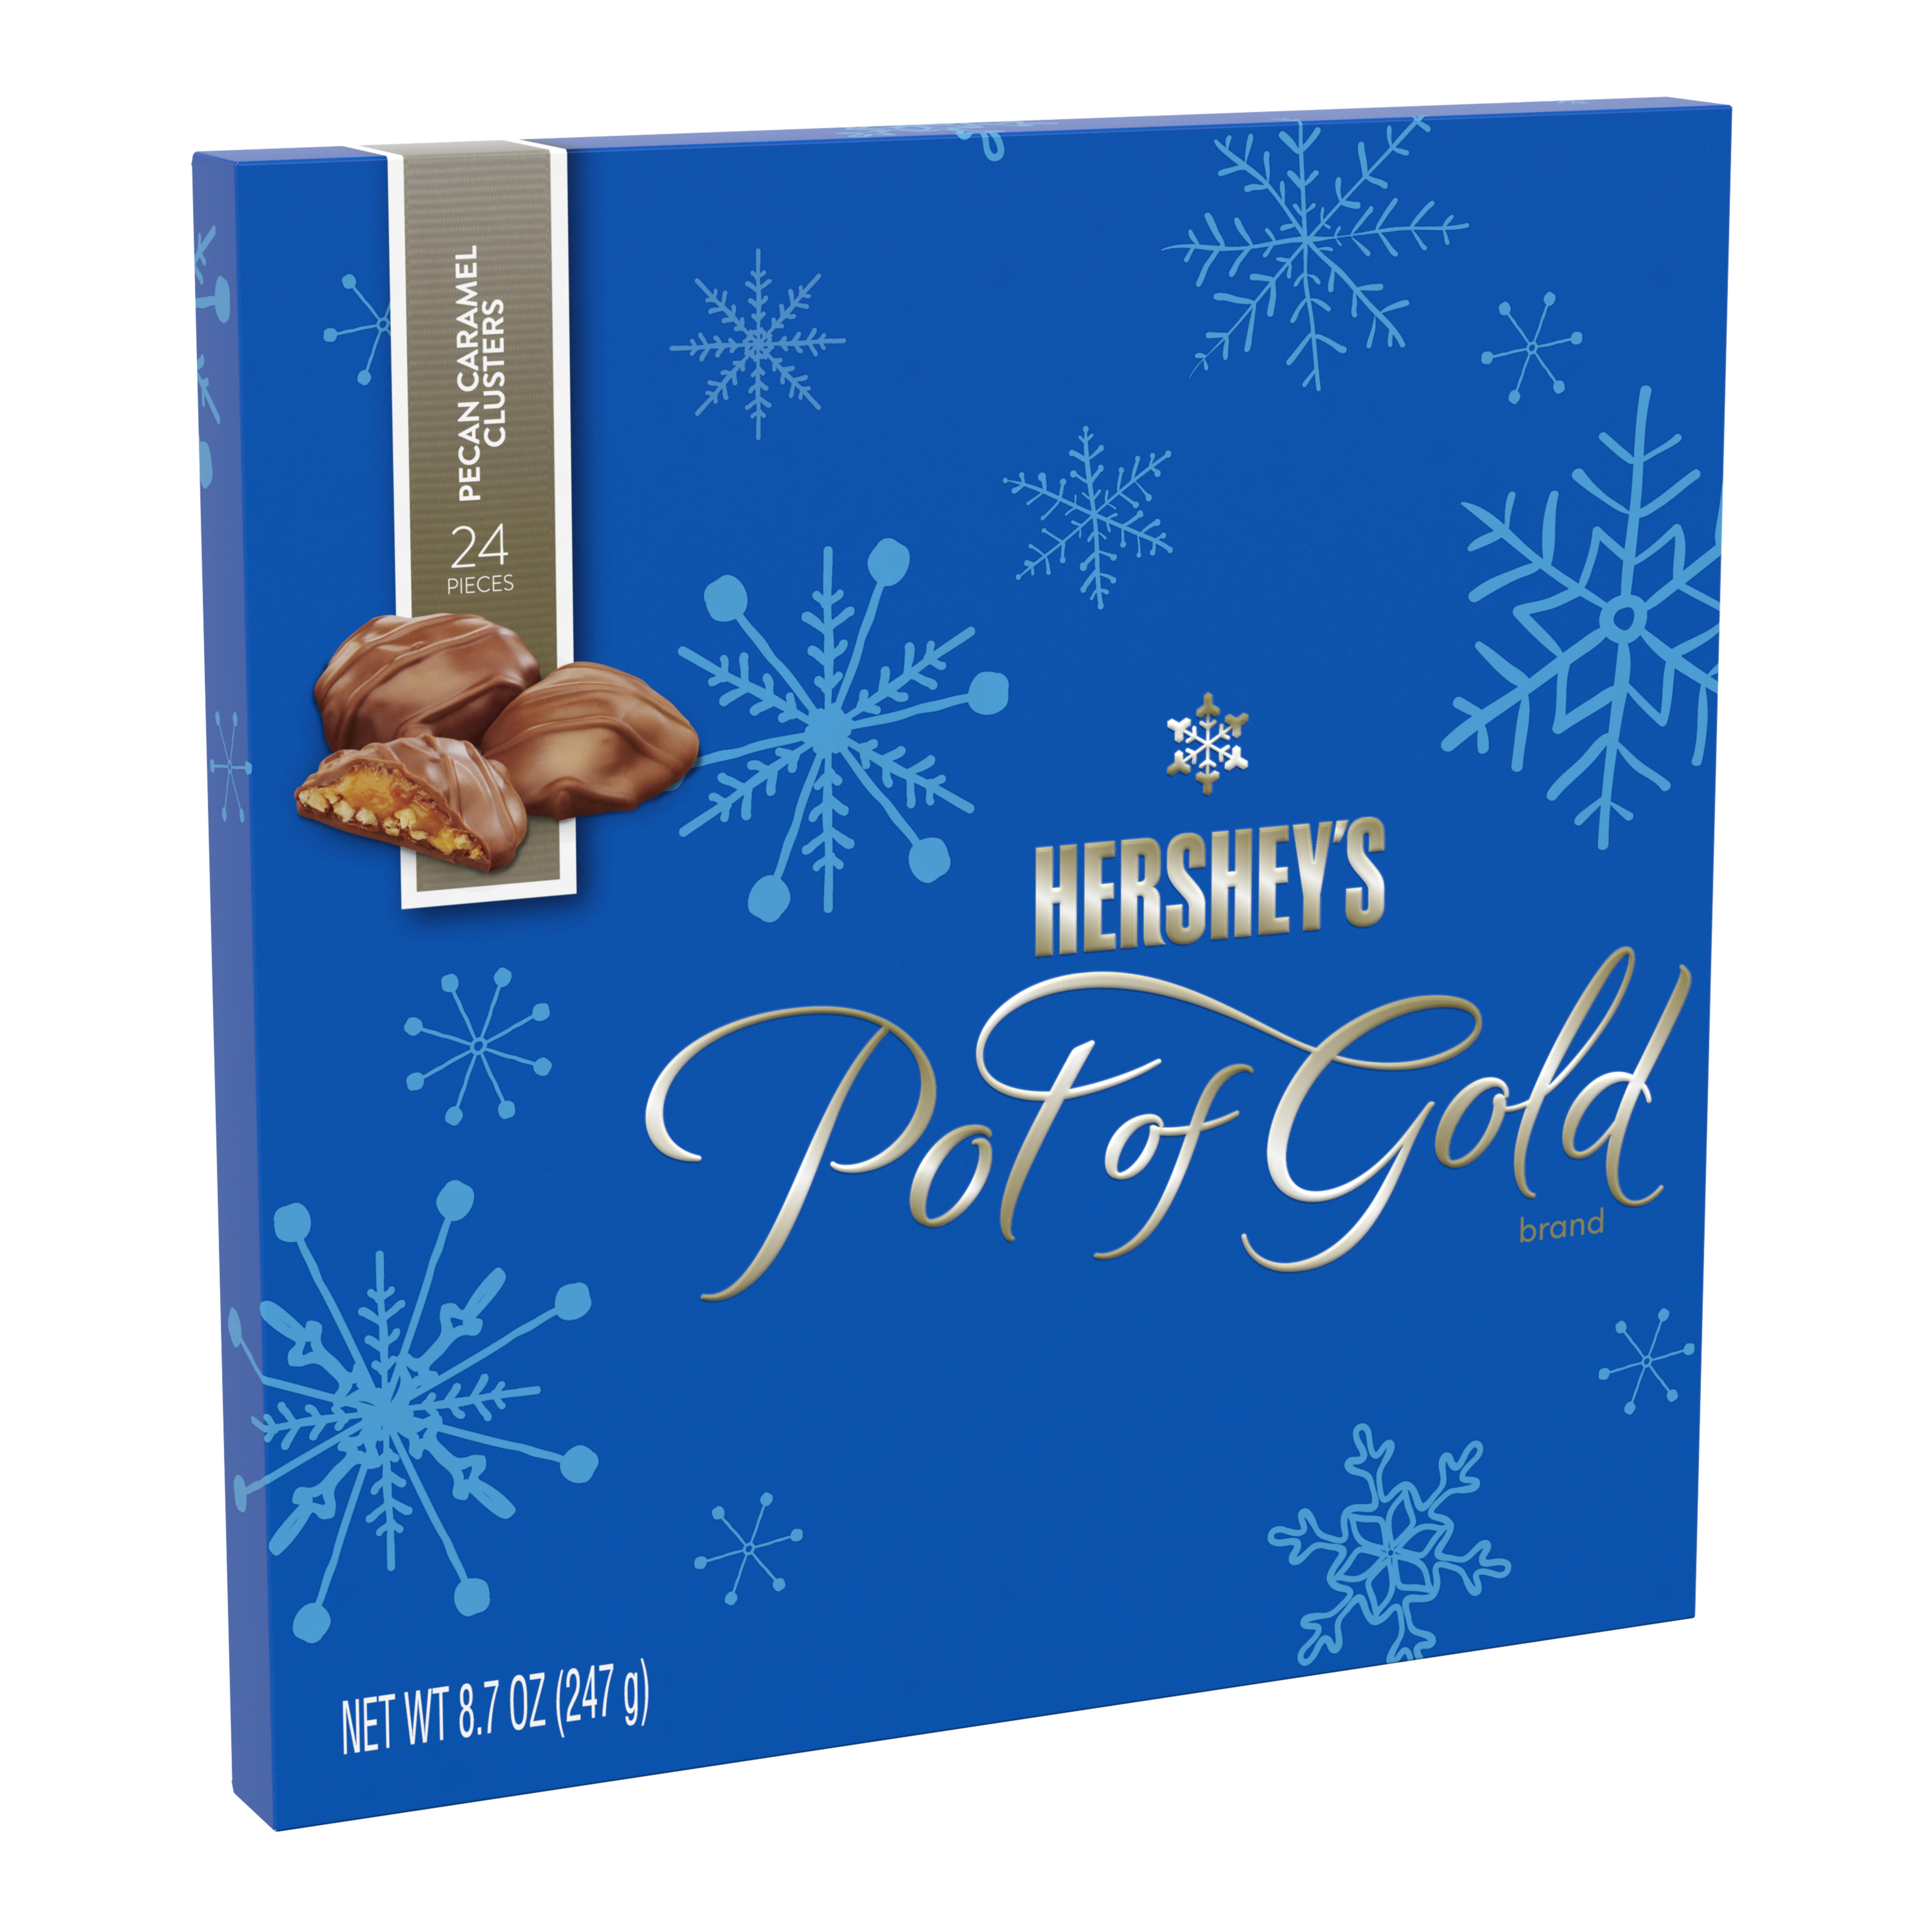 Hershey's, Pot of Gold Pecan Caramel Clusters Christmas Candy, 8.7 Oz